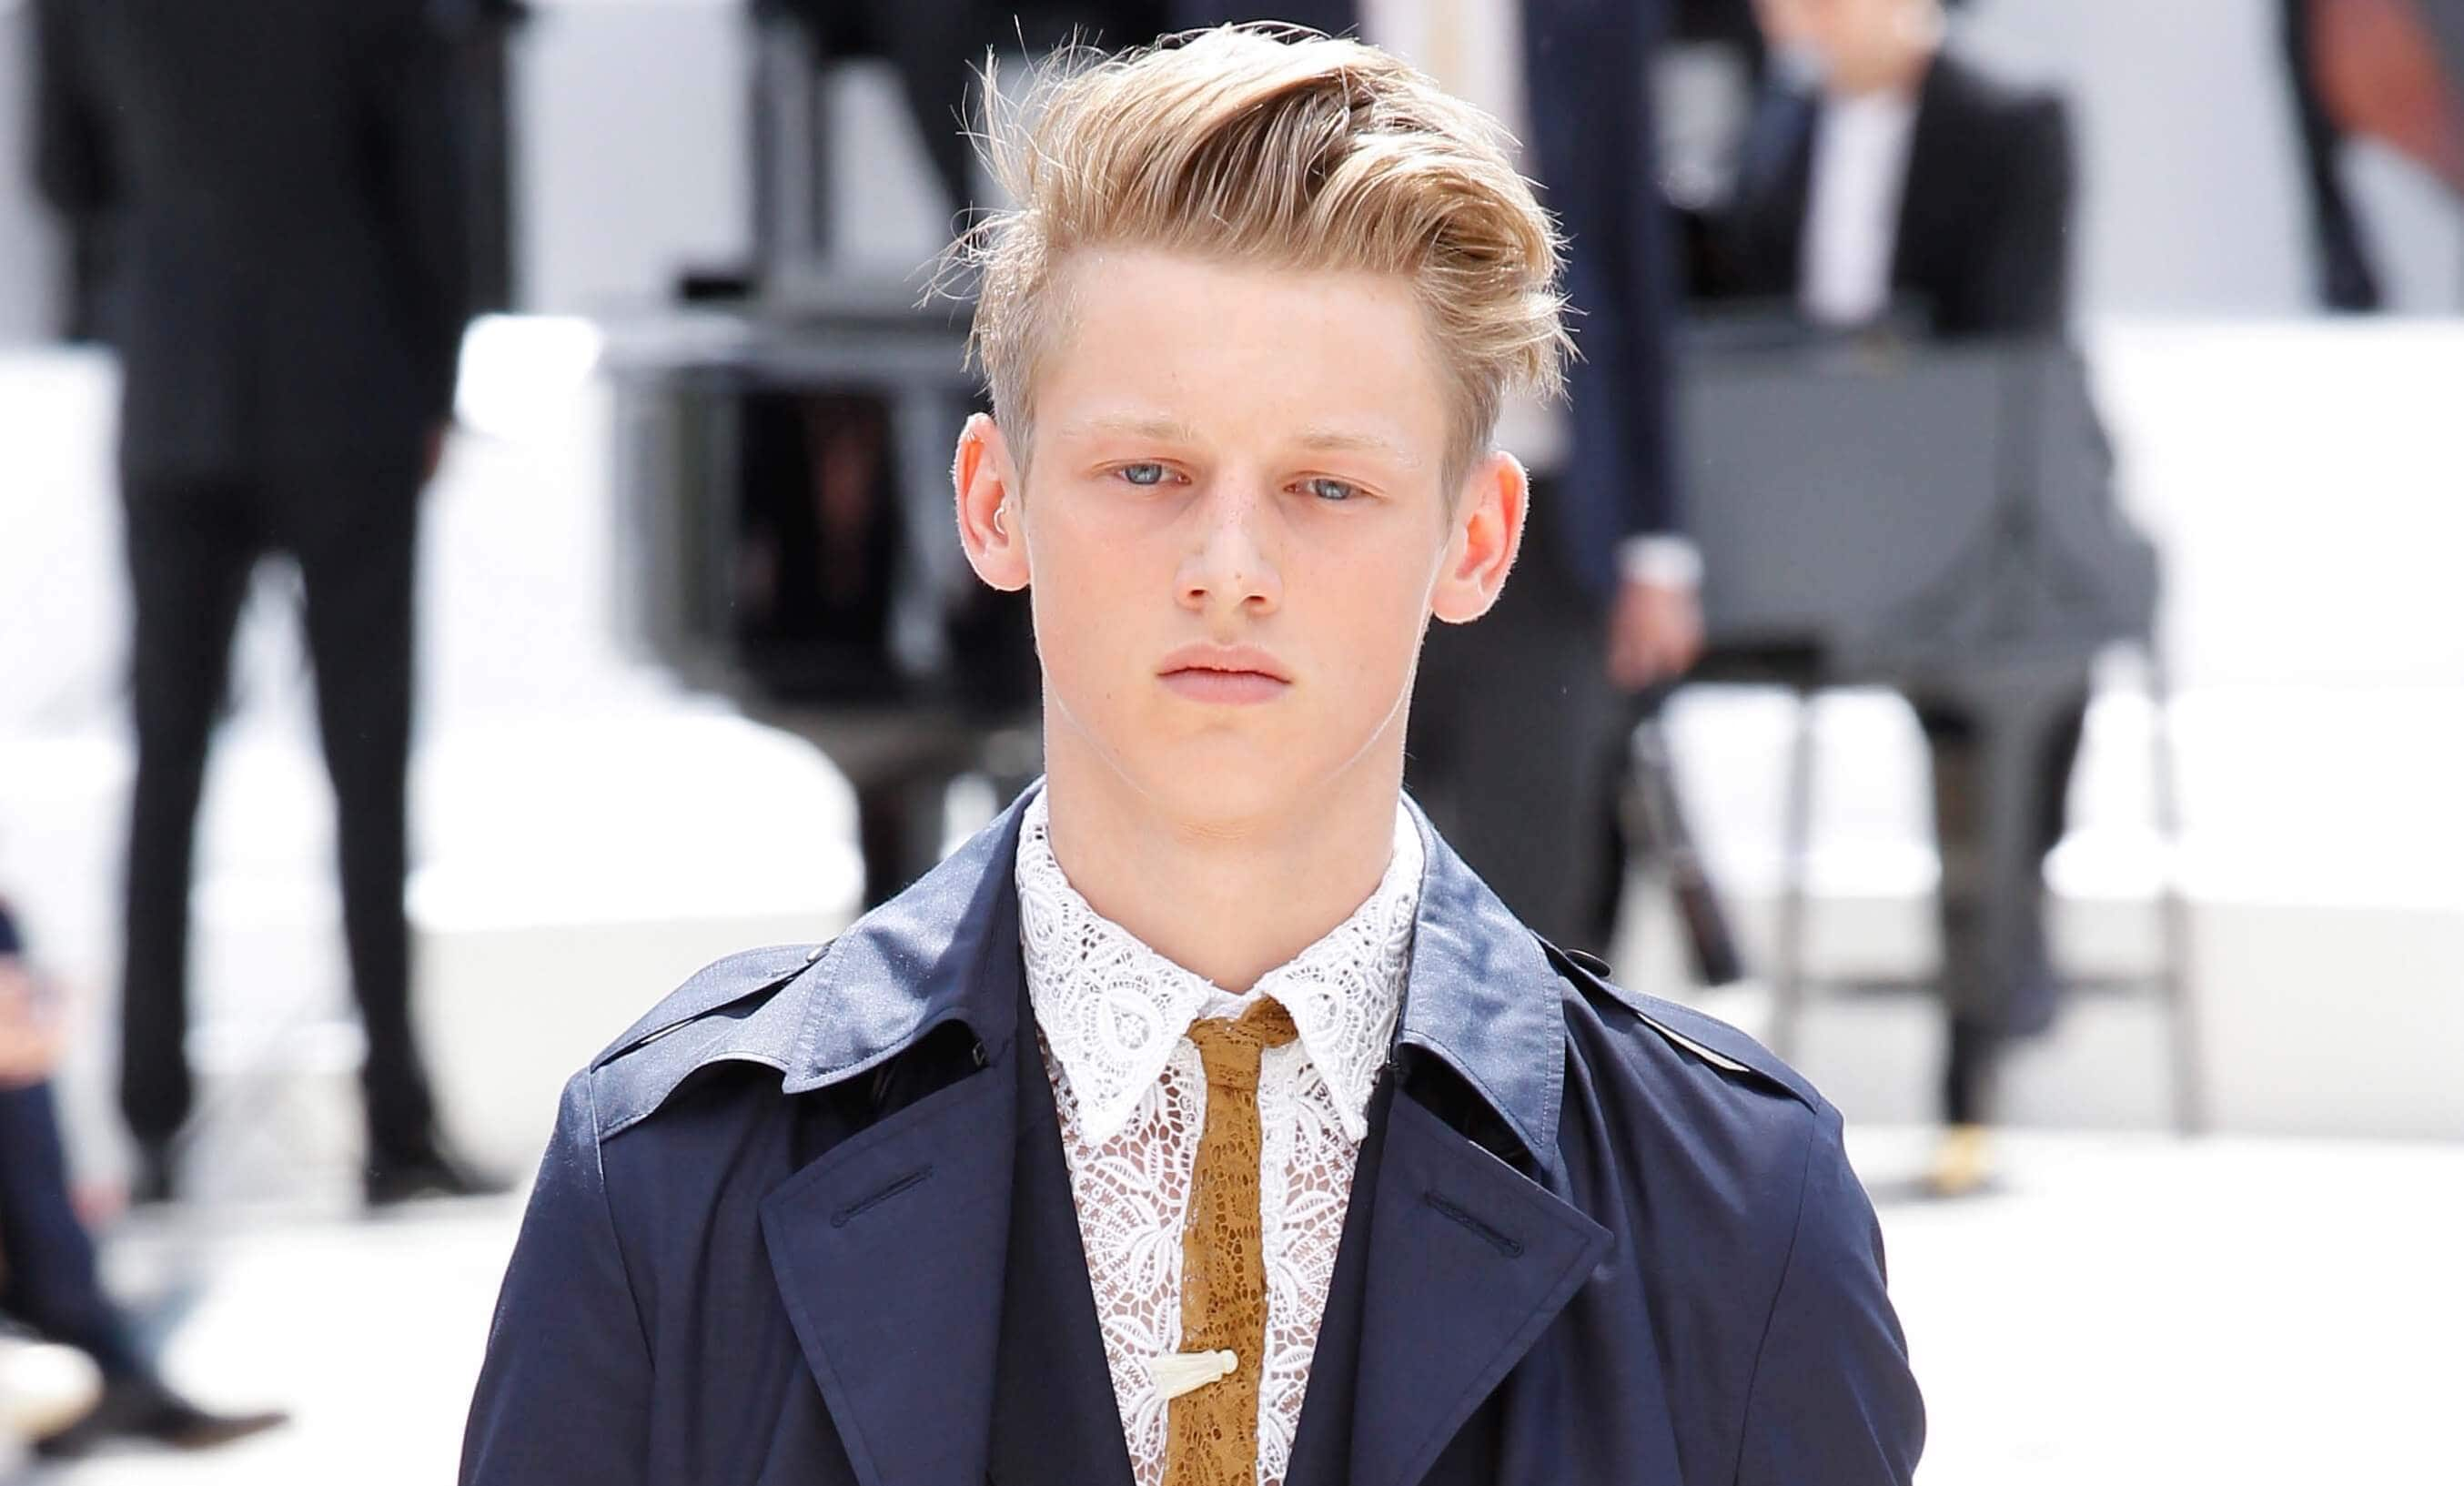 man with blonde hair styled into a quiff walking on the runway wearing a classic navy blue outfit